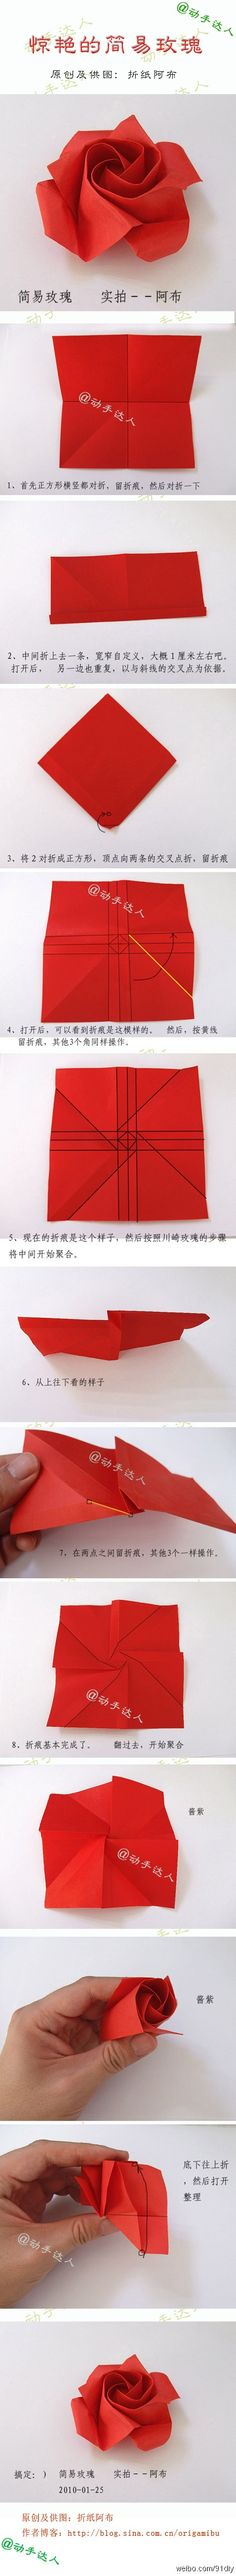 Origami Easy Rose Folding Instructions